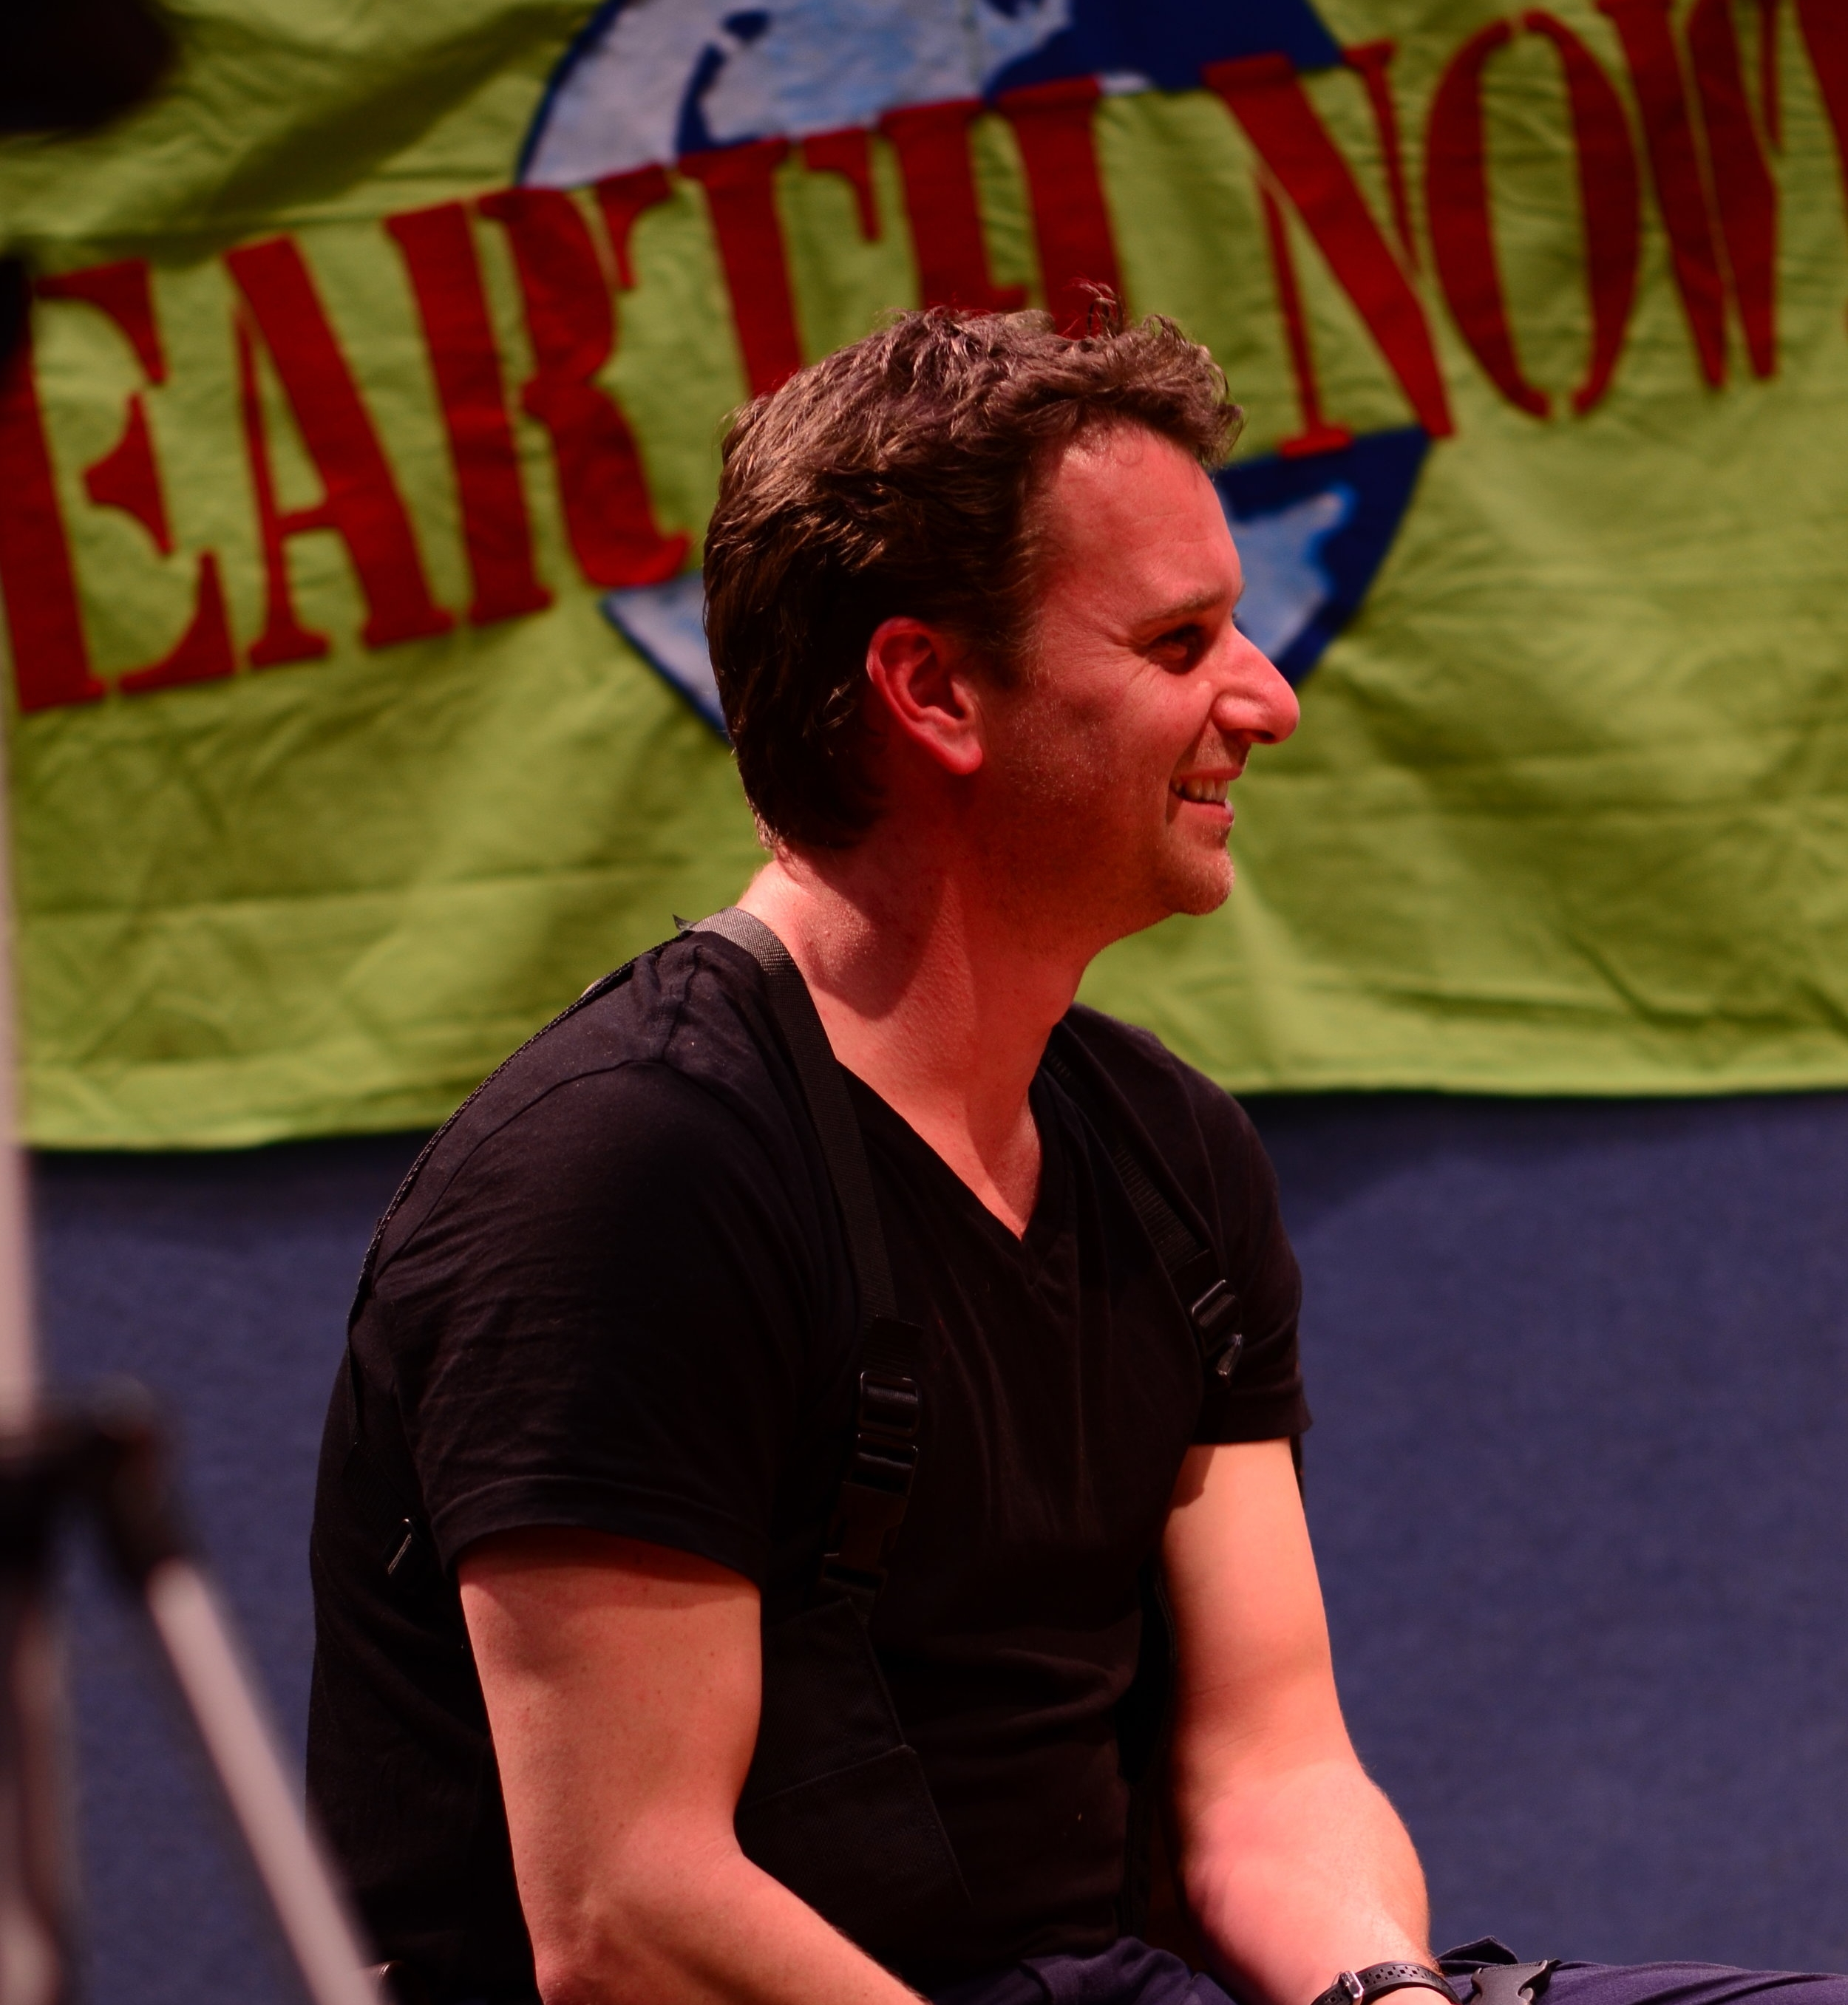 Scott at Howard Fine's Melbourne Master Class in 2012.